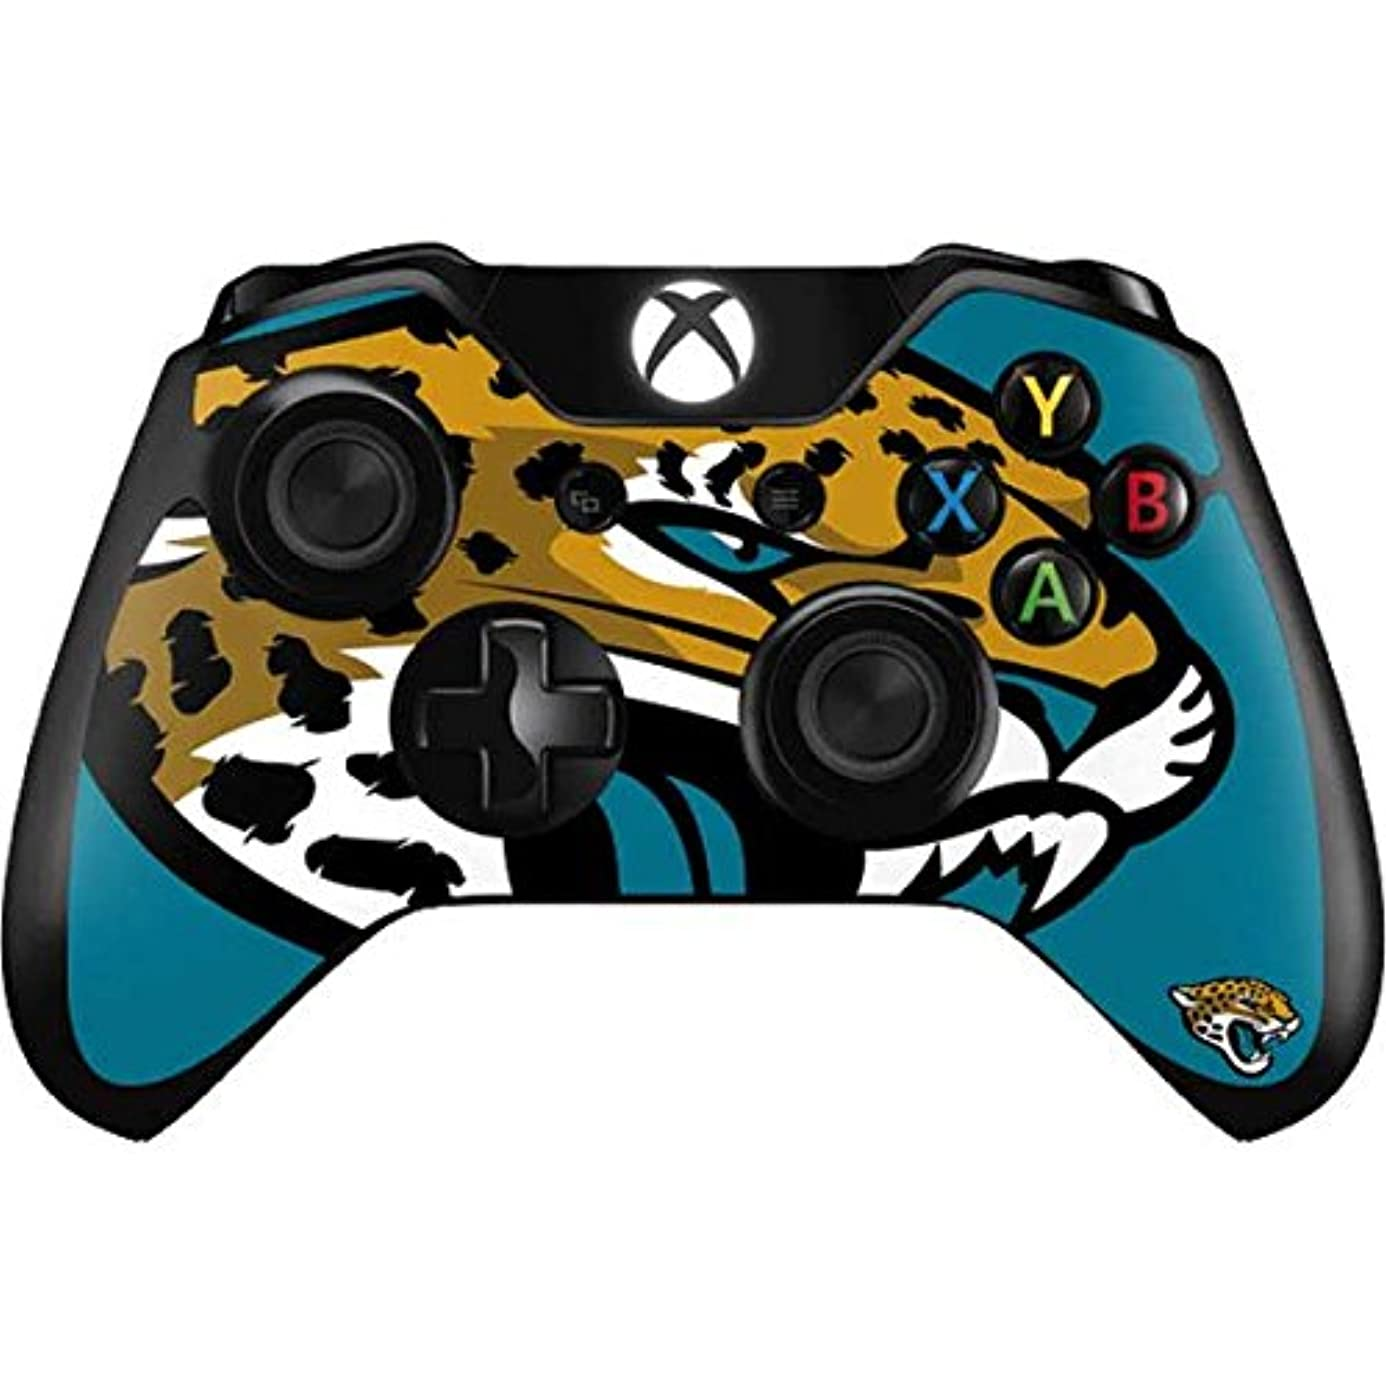 Skinit Jacksonville Jaguars Large Logo Xbox One Controller Skin - Officially Licensed NFL Gaming Decal - Ultra Thin, Lightweight Vinyl Decal Protection